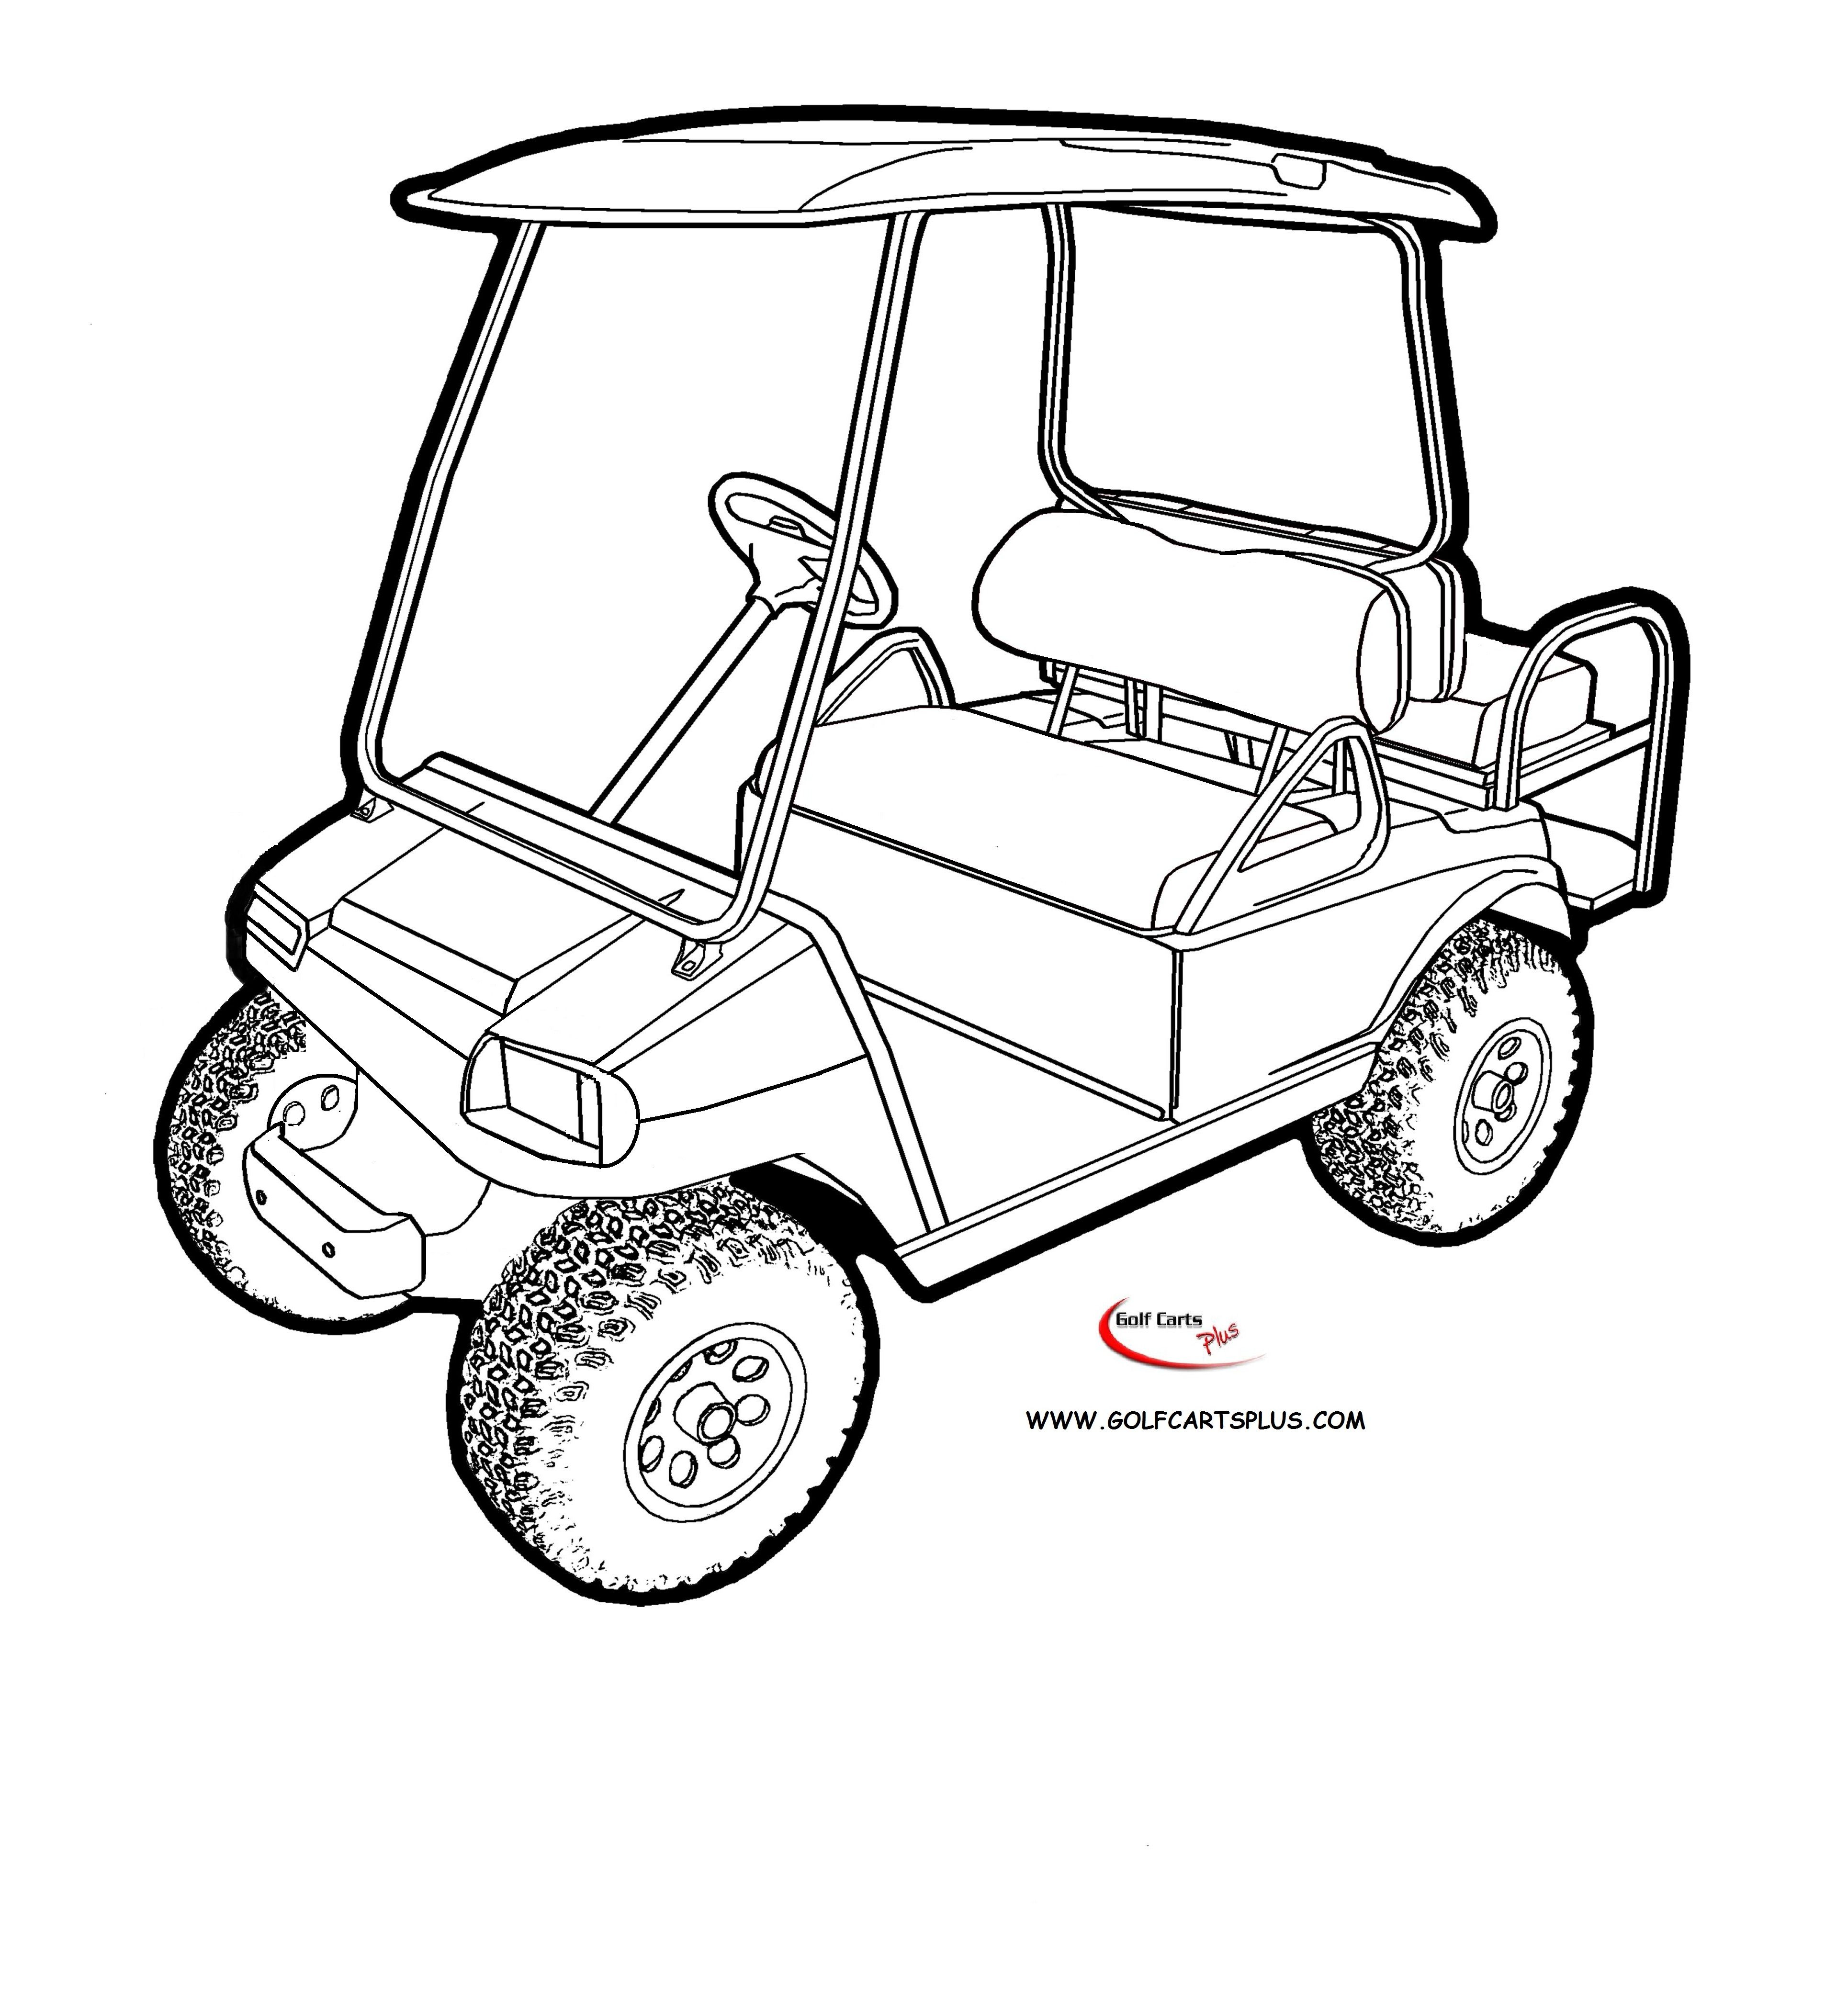 Enchanting Car Accident Drawing Ensign - Electrical and Wiring ...